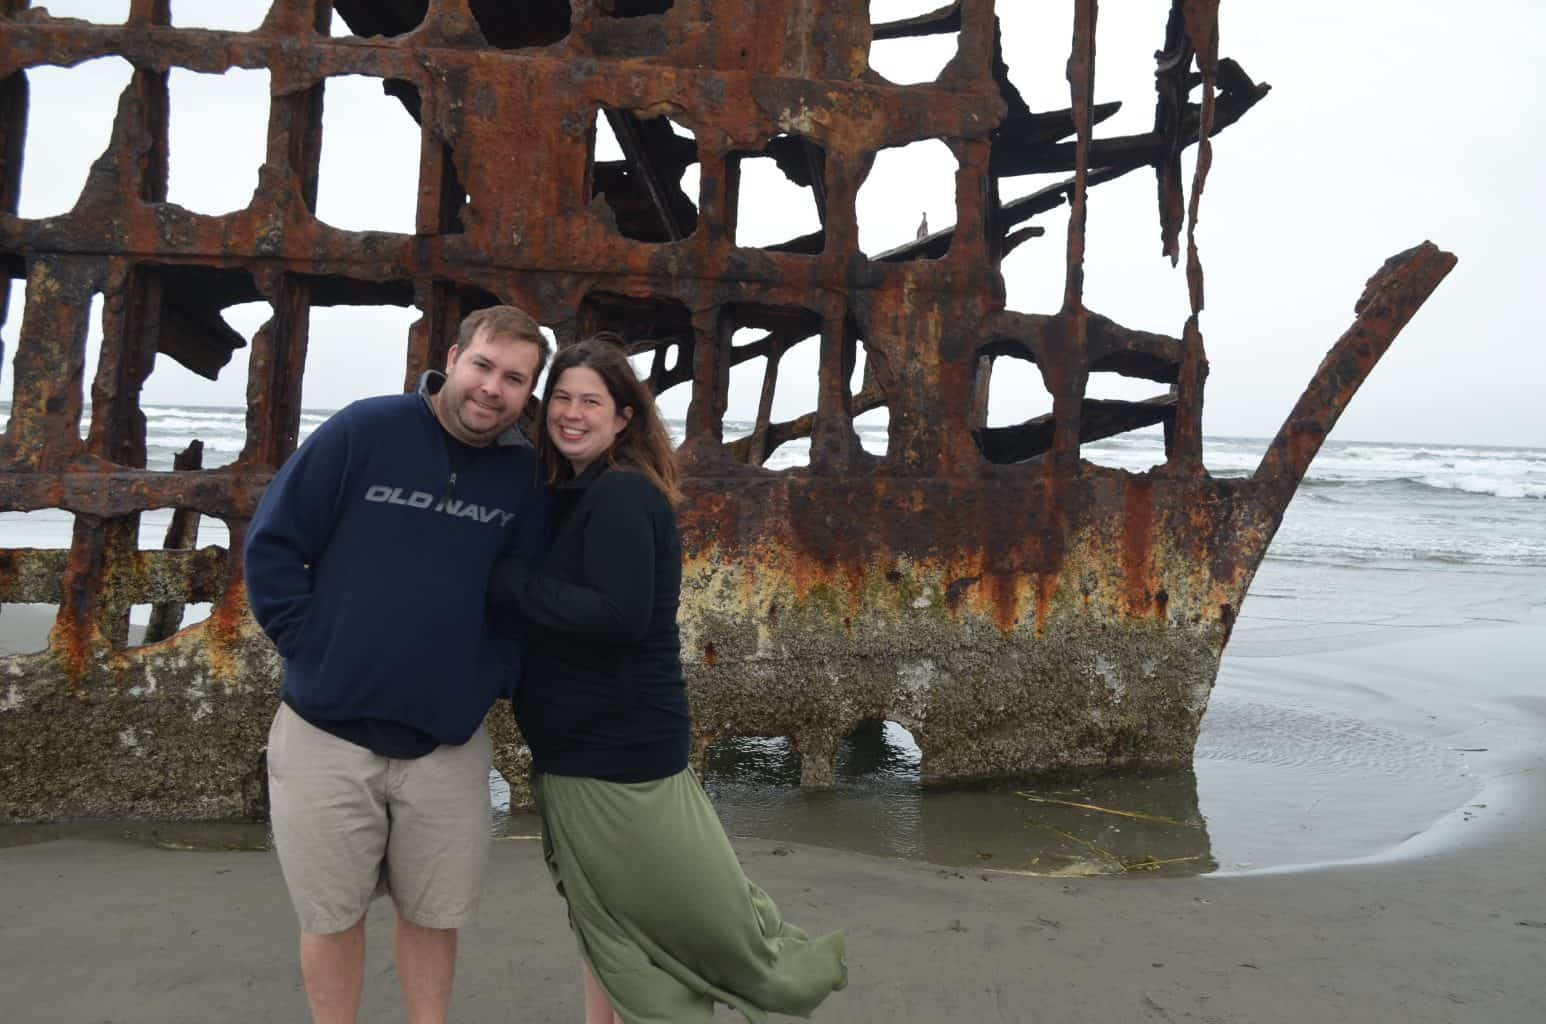 Peter Iredale shipwreck in Oregon coast